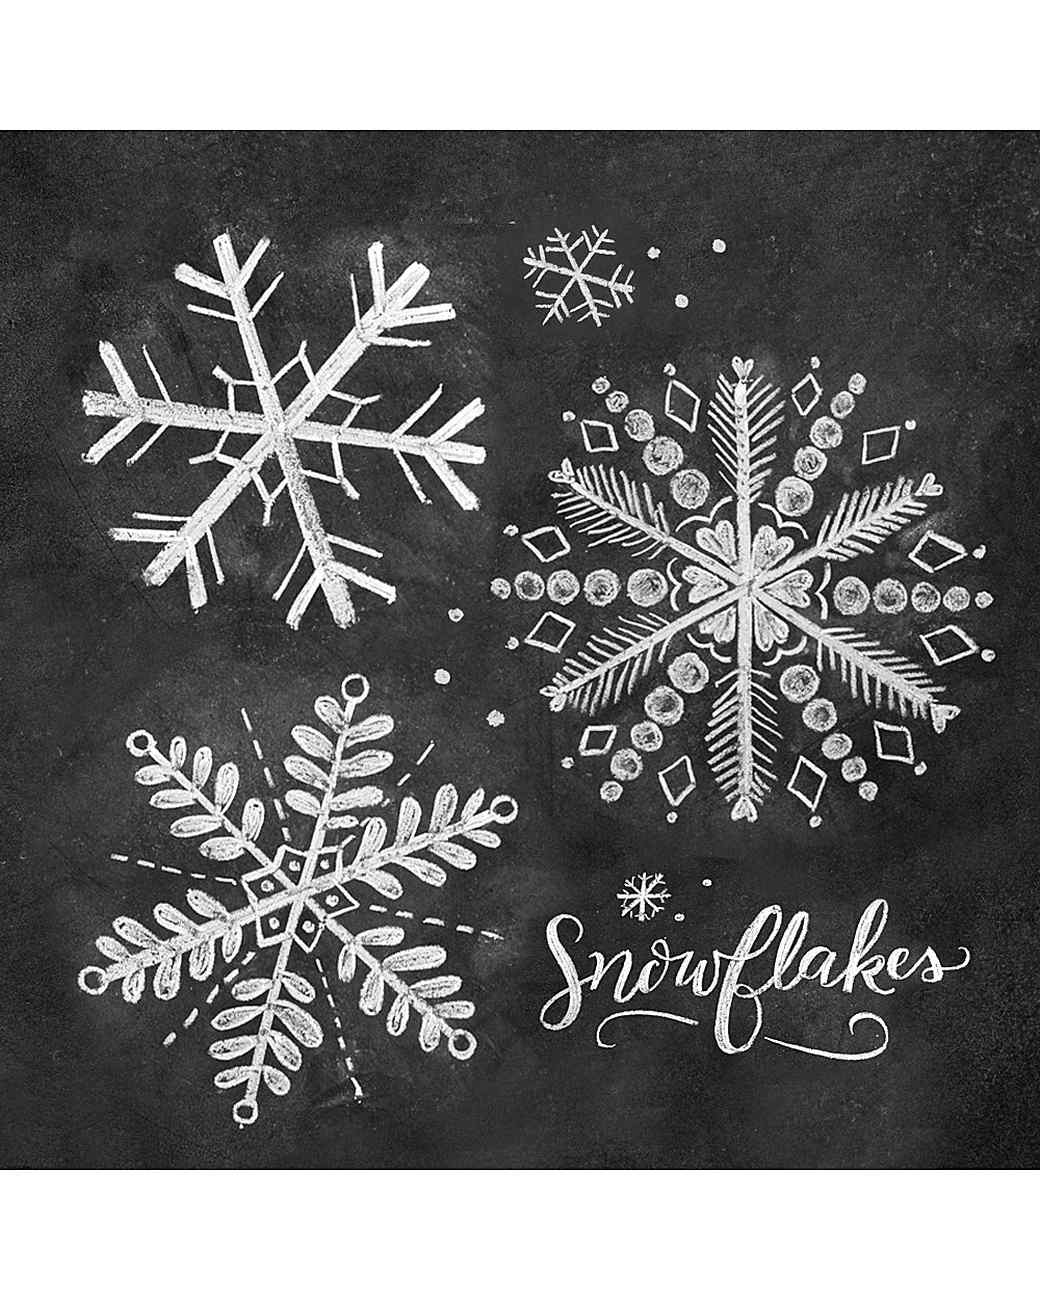 How to Draw Ornate Snowflake Chalk-Art | Martha Stewart